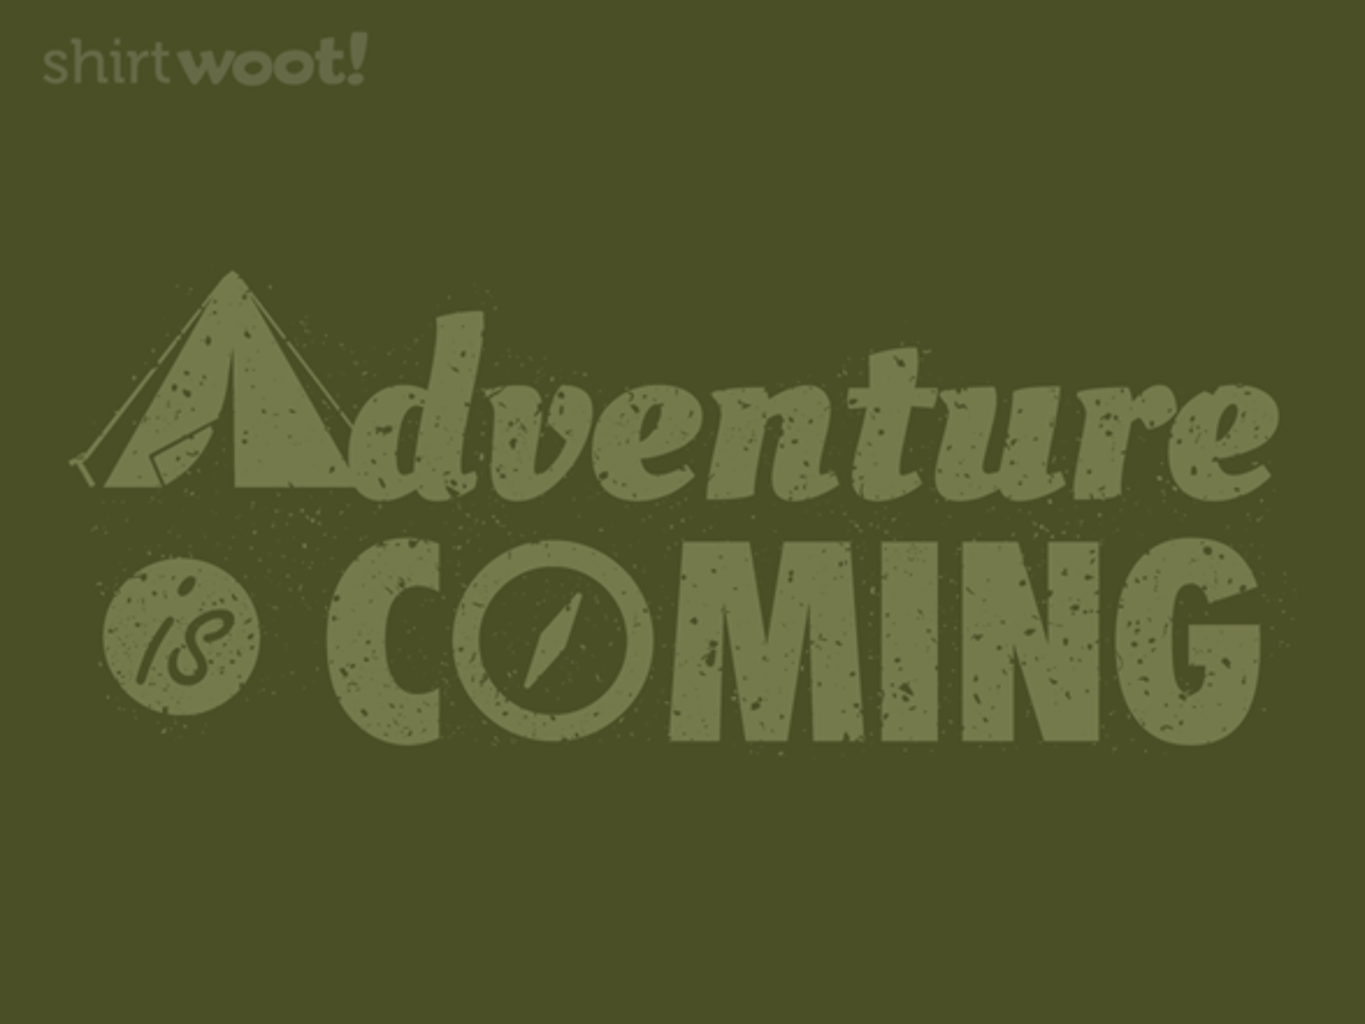 Woot!: Adventure is Coming